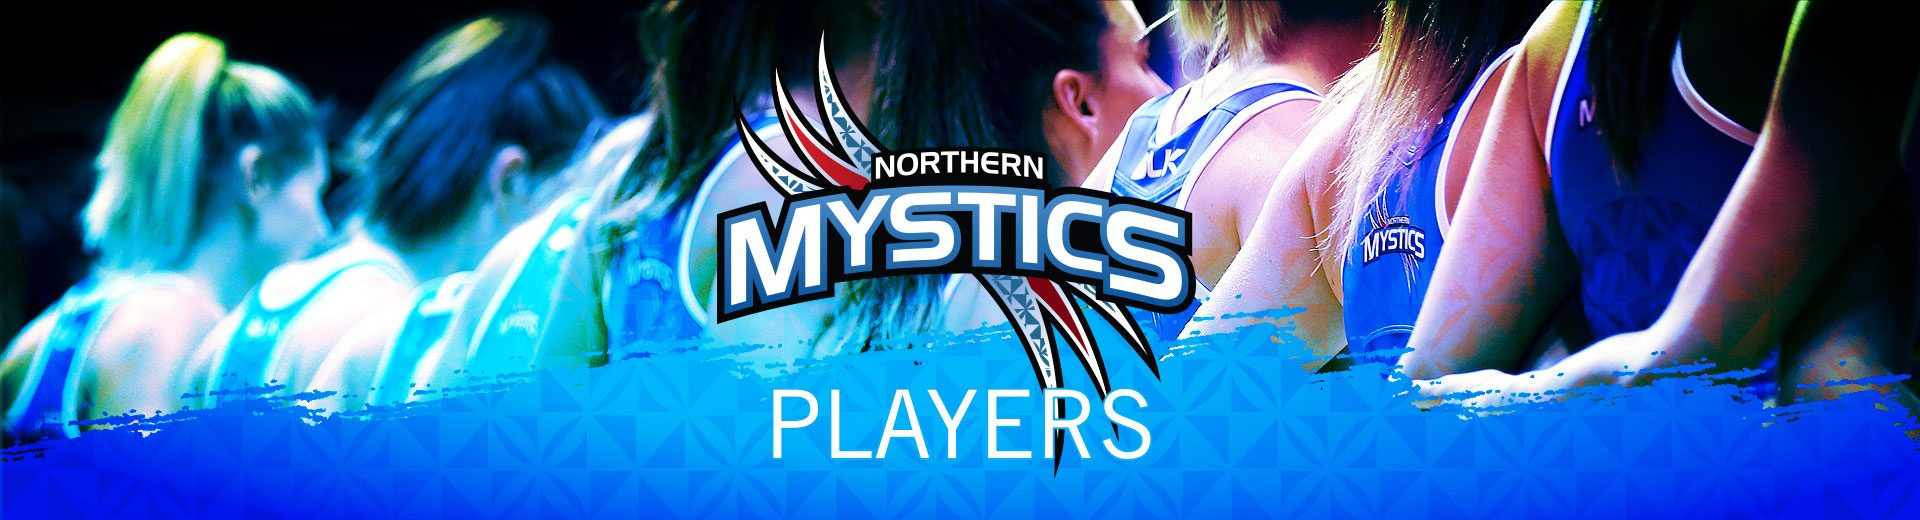 Players | Northern Mystics